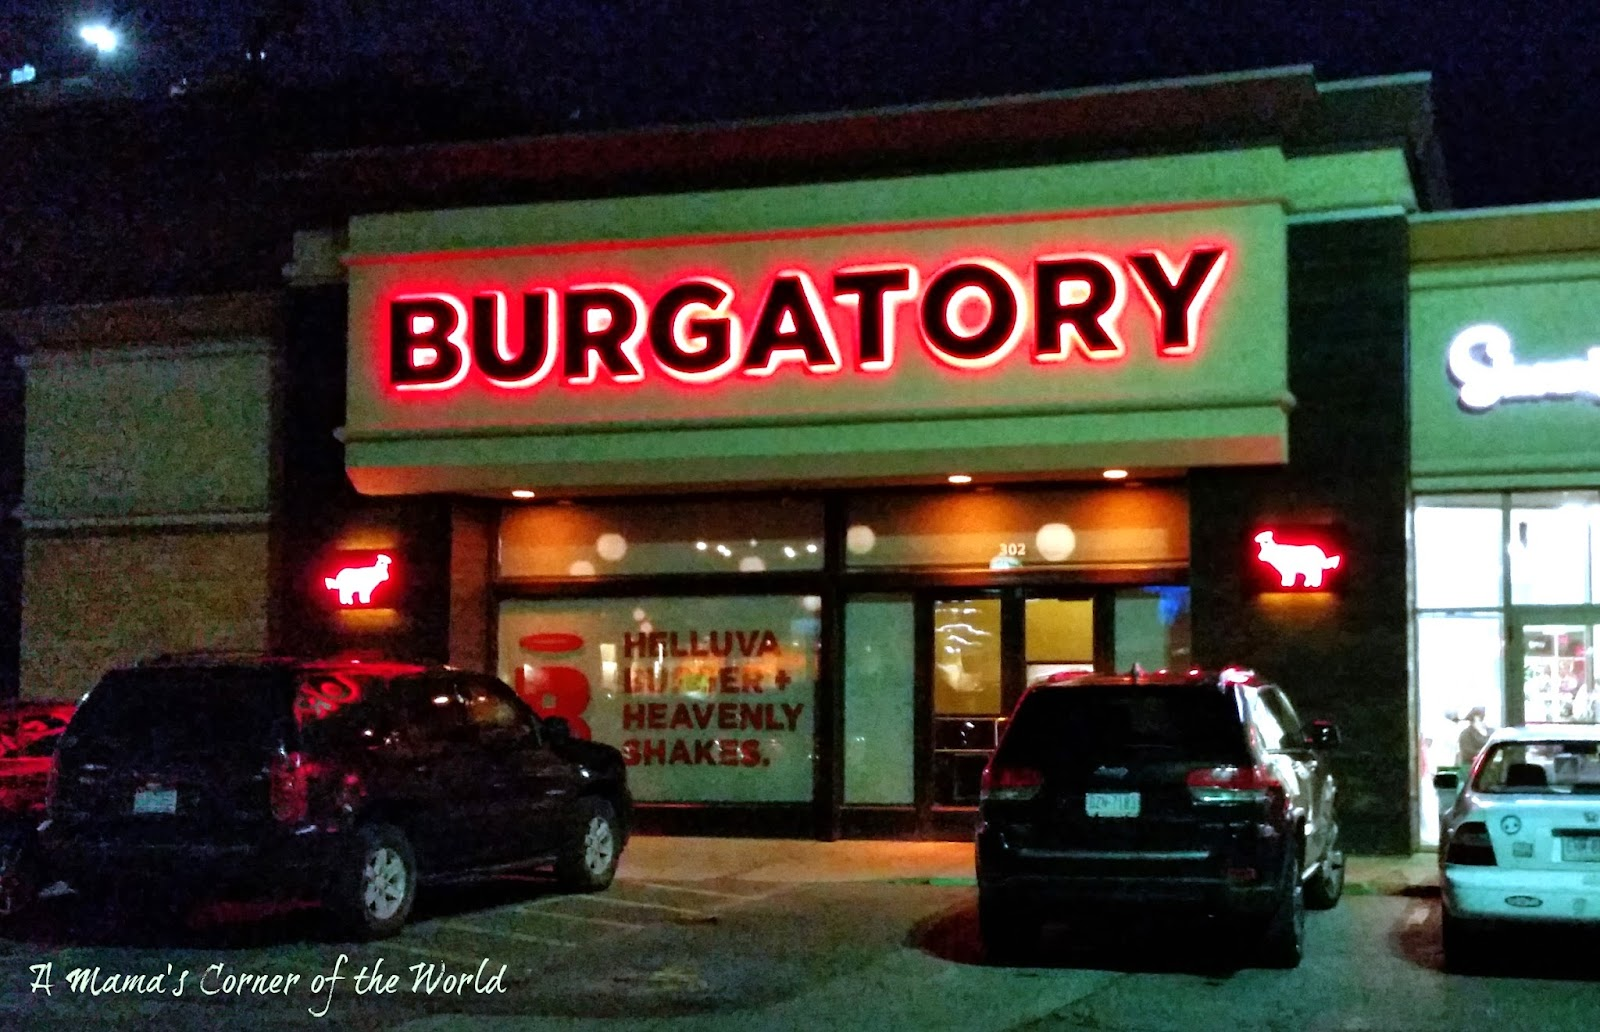 Burgatory Is In A Little Strip Mall With Few Other Chain Restaurants Near Pittsburgh S Por Robinson Centre There Are So Many Food Options The